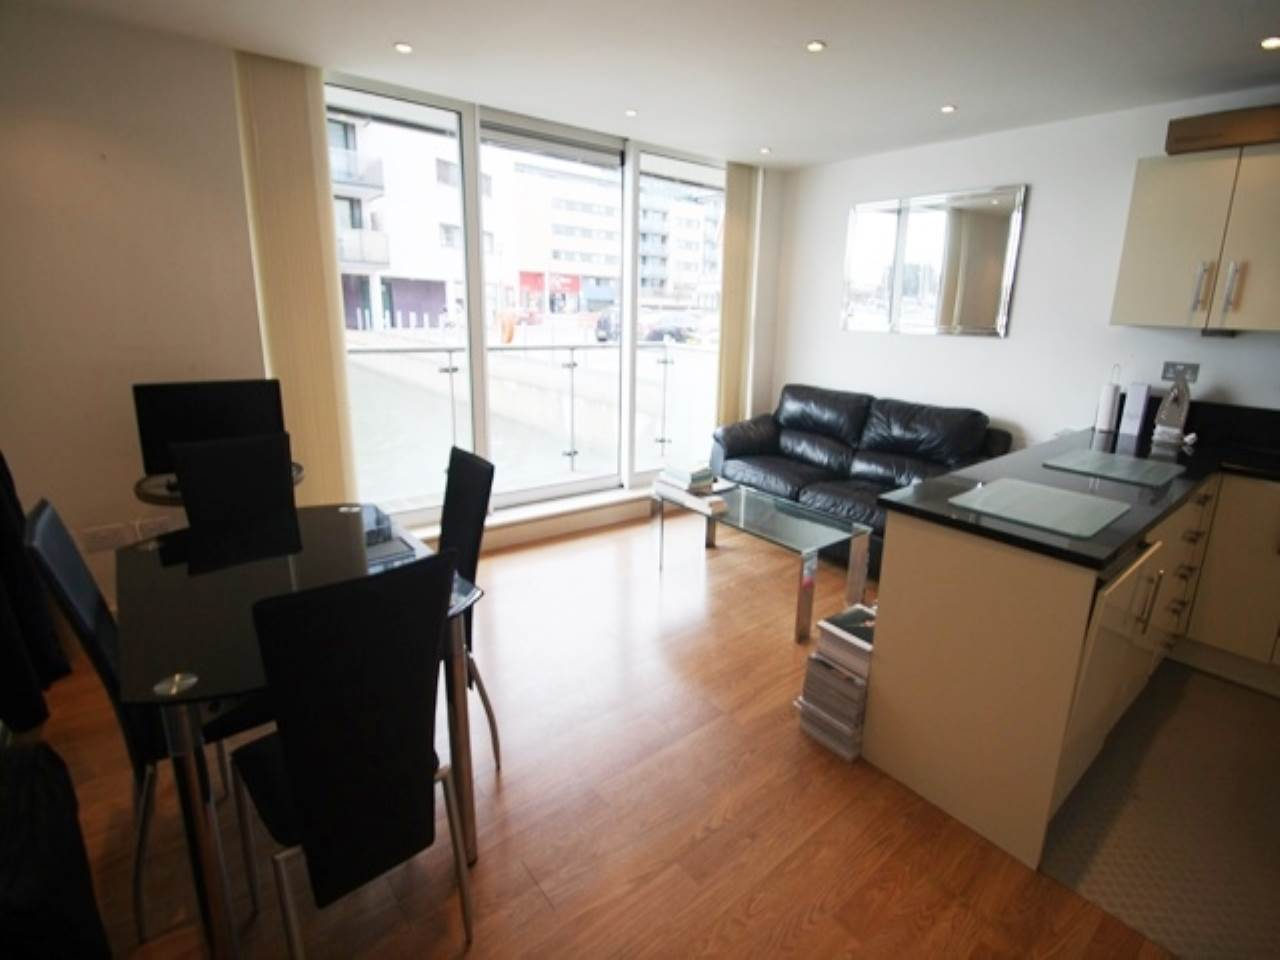 1 bed flat to rent in Royal Docks, E16